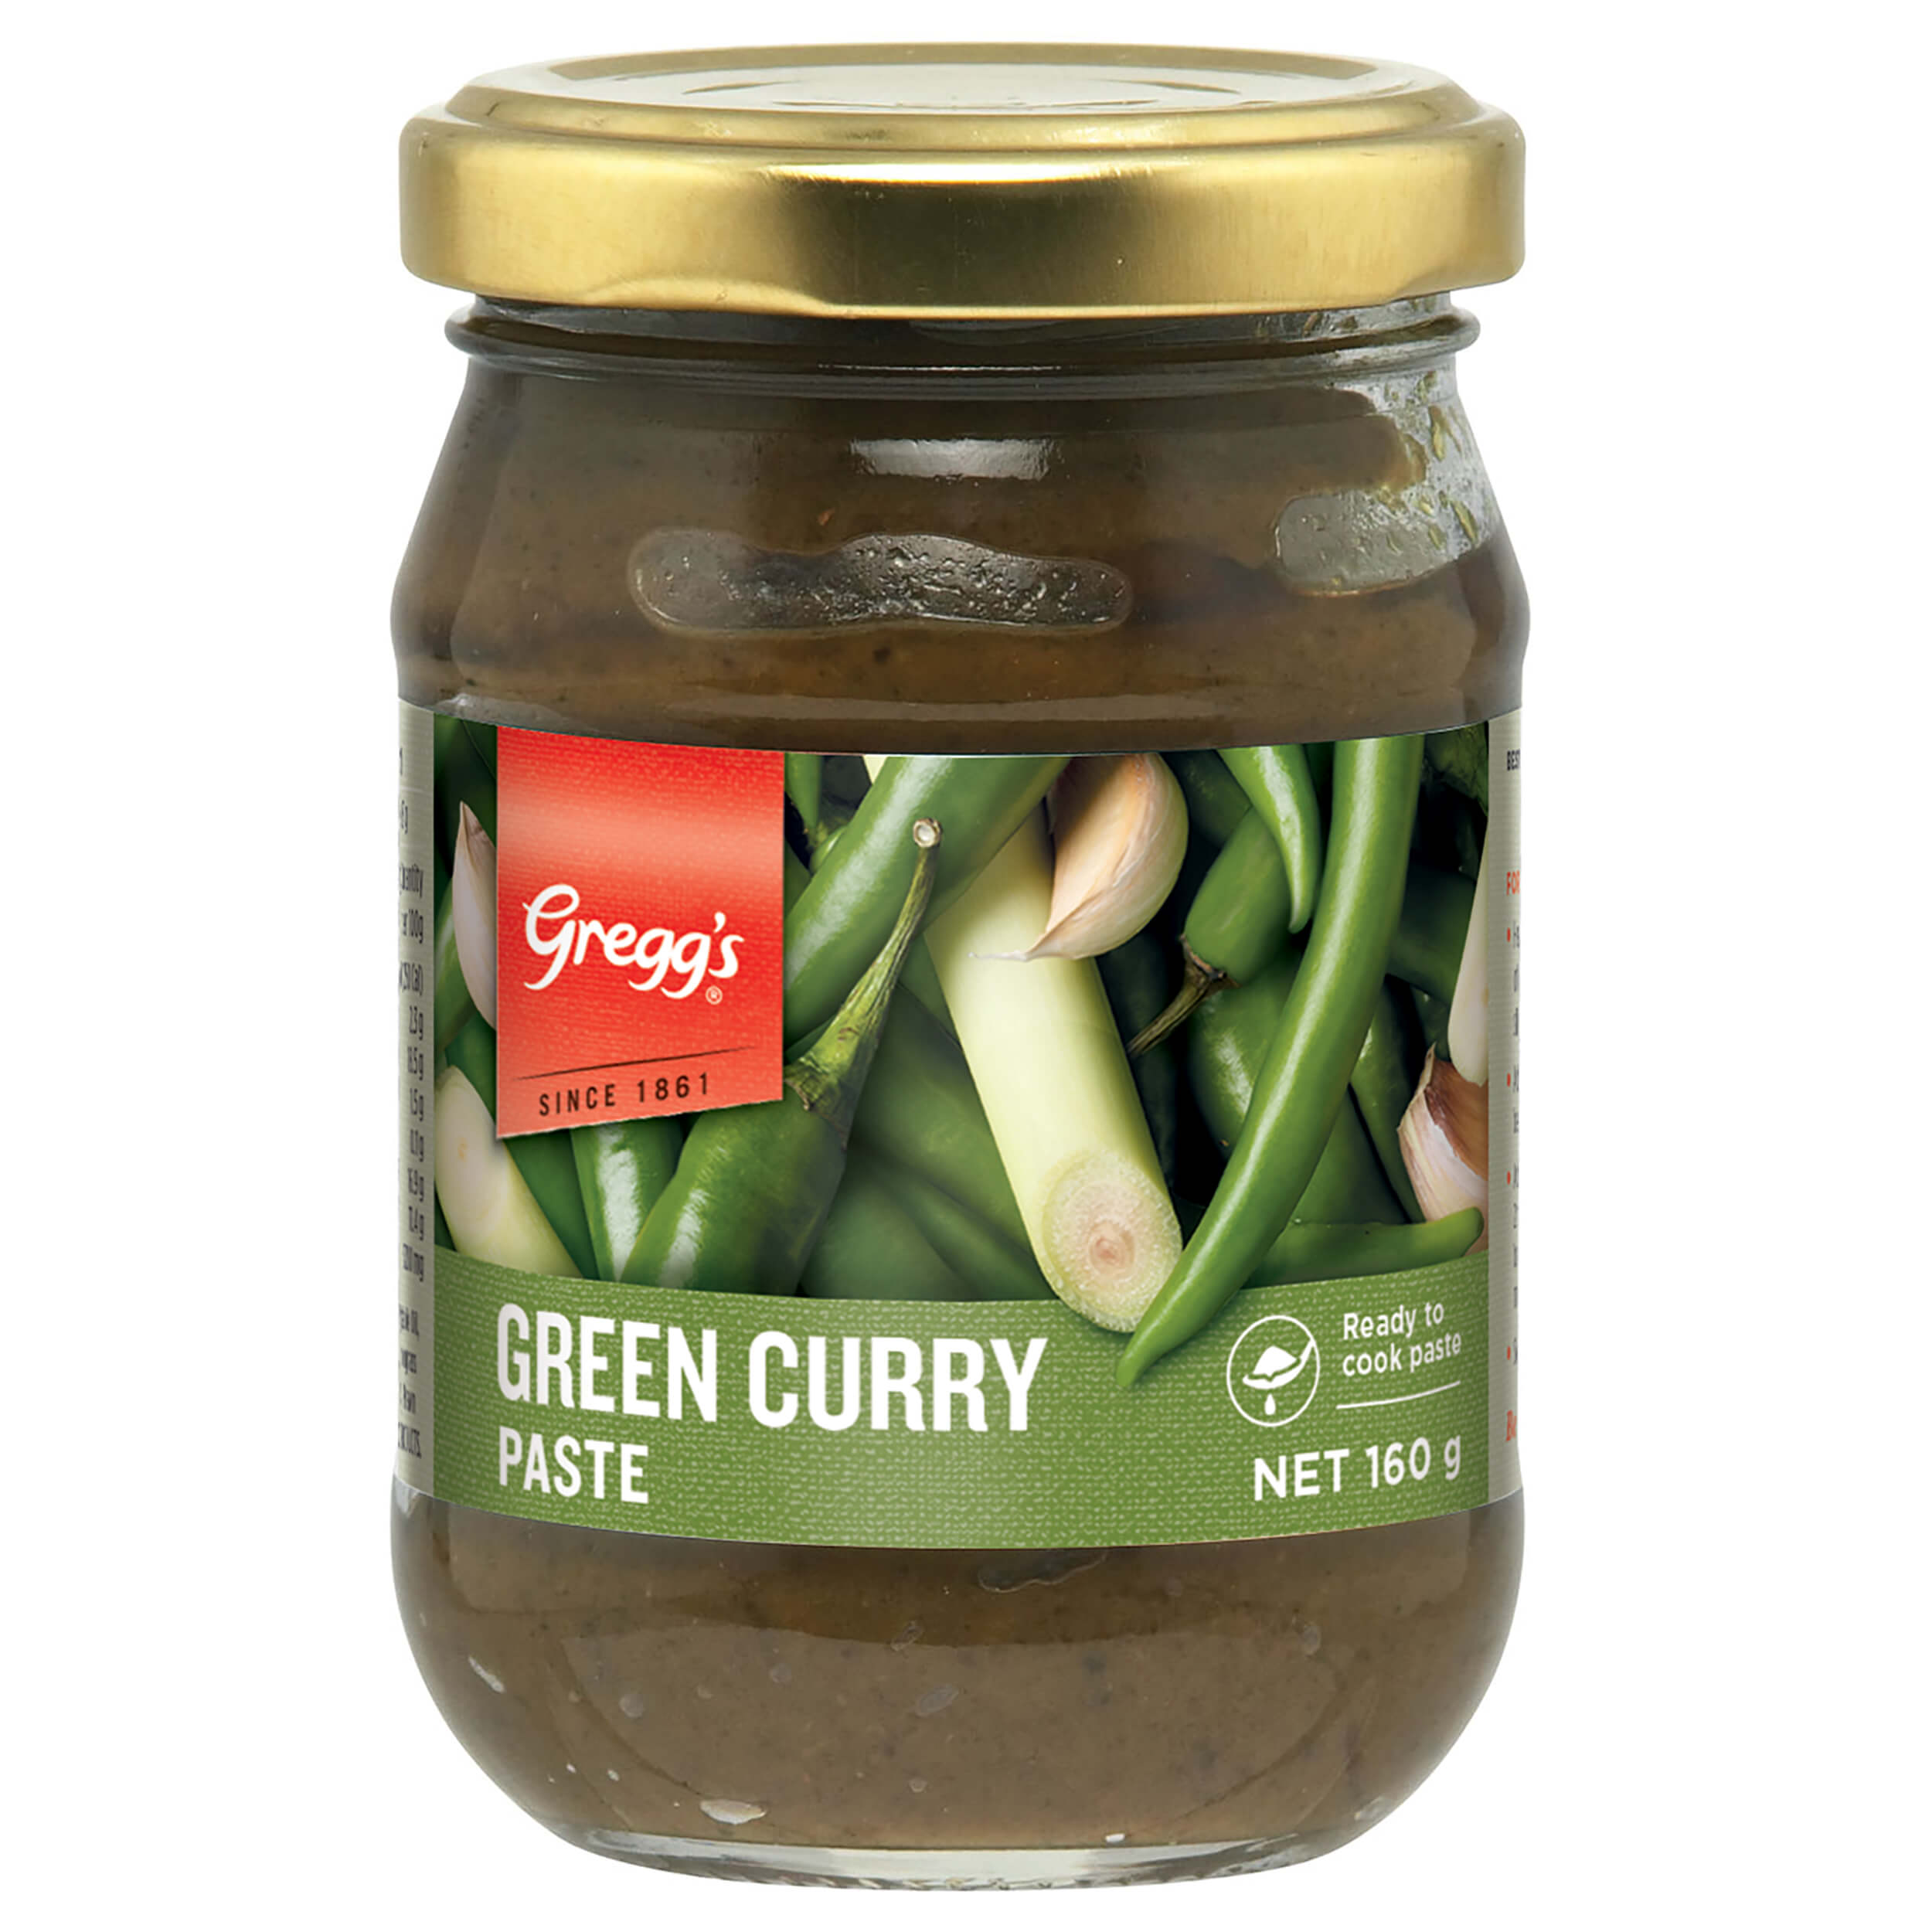 Green Curry Paste image